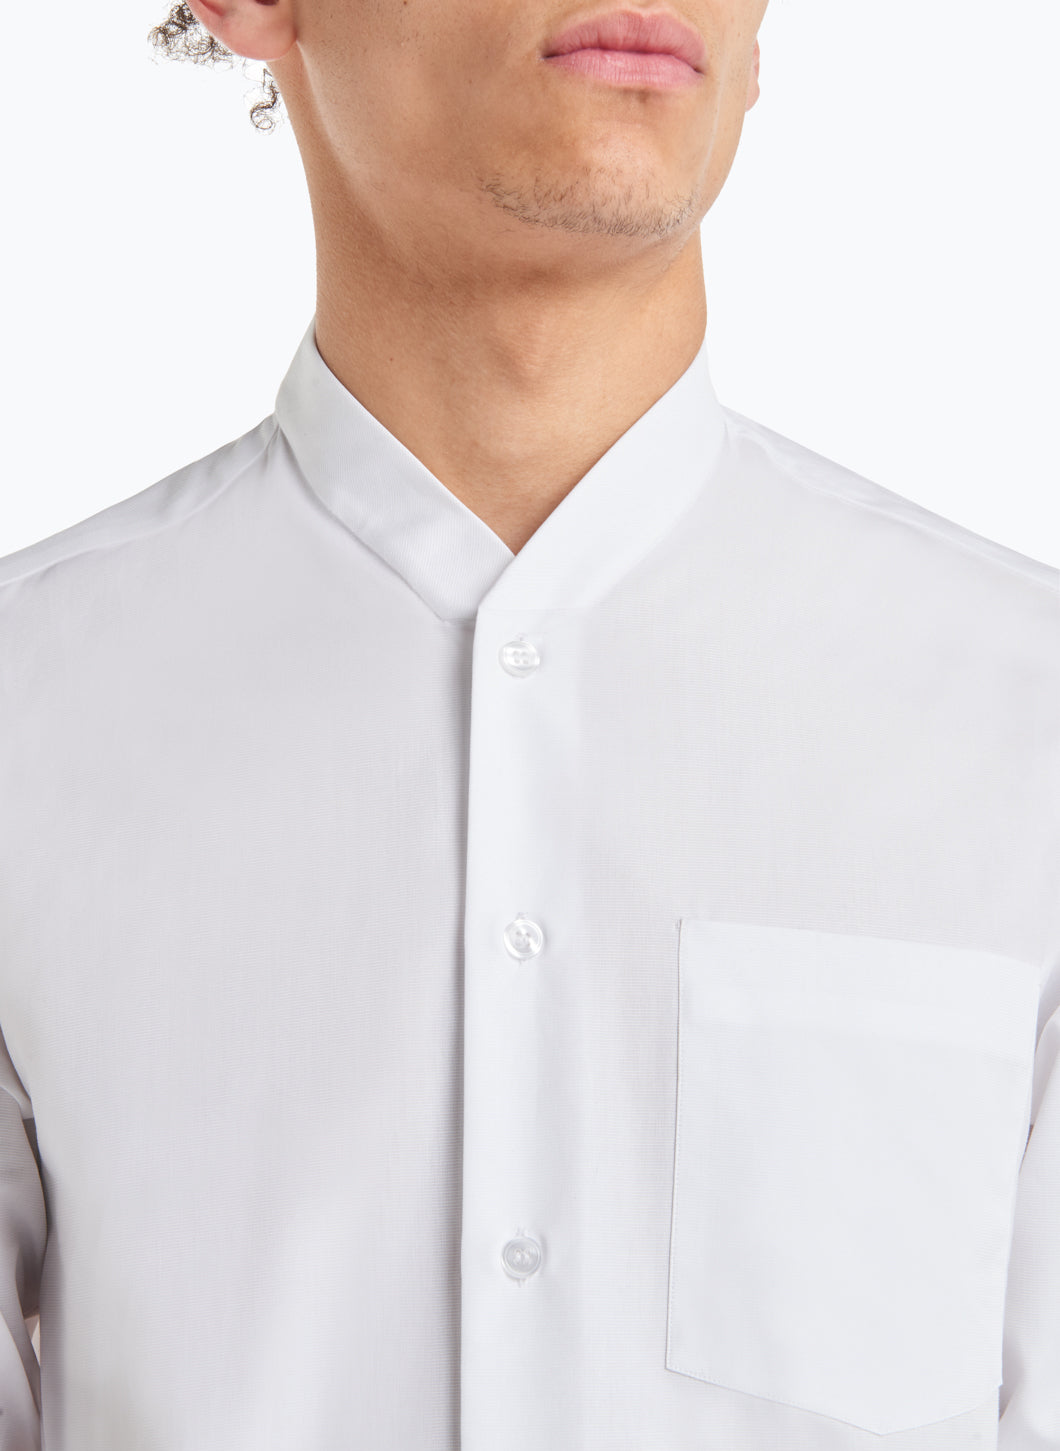 False Collar Shirt in White Ottoman